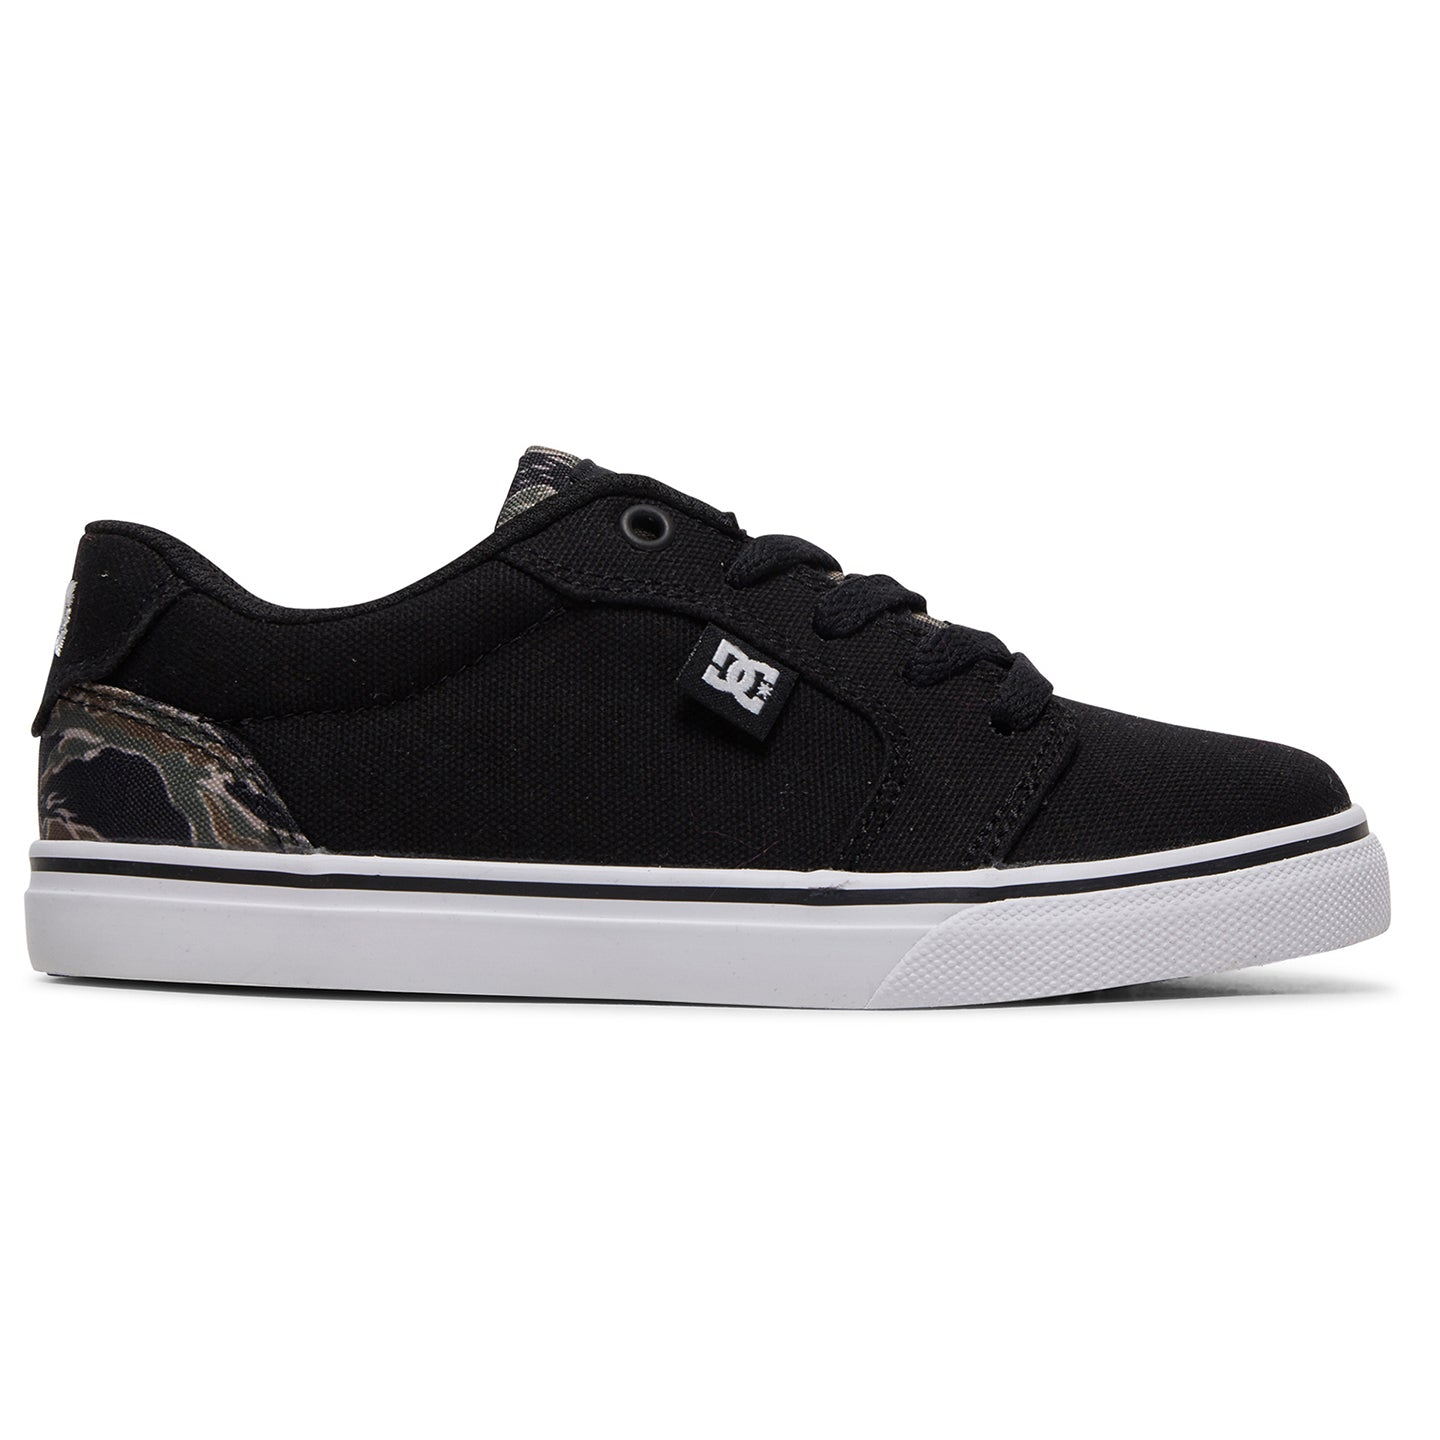 DC ANVIL YOUTH - BLACK/CAMO